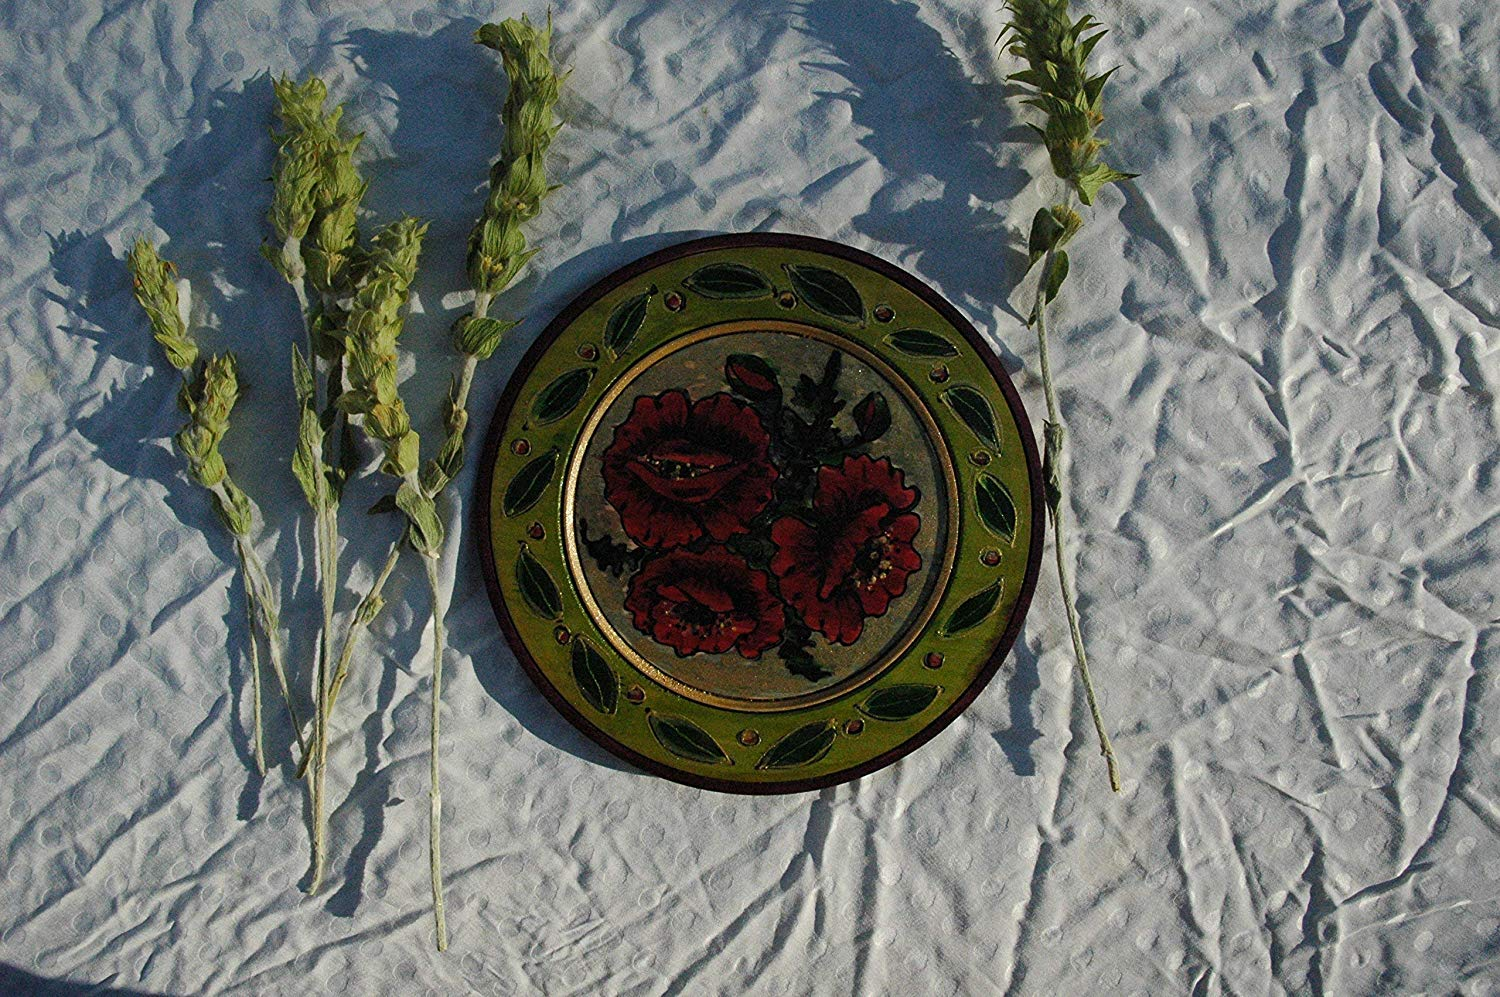 Sale!!!10% Off,Hand Painted Red Poppies on Wooden Plate, Wooden Souvenir Plate, Poppies Flower, Wood Bowl, Handpainted Bowl Plate, Wall Hanging Plate, Floral Plates.